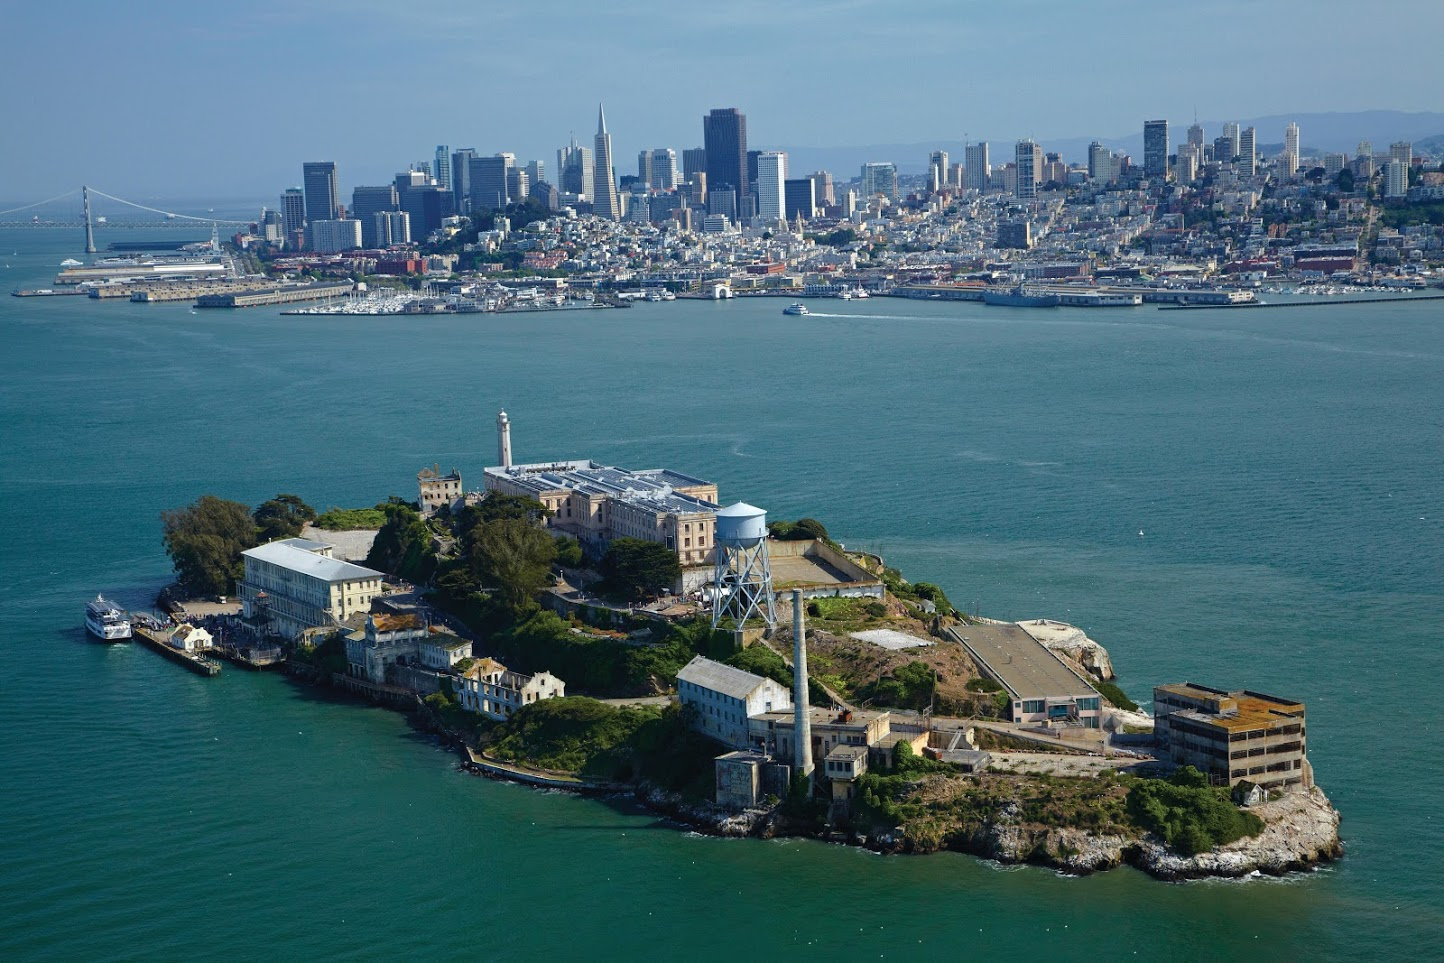 Alcatraz_Island_SF_city_background.jpg